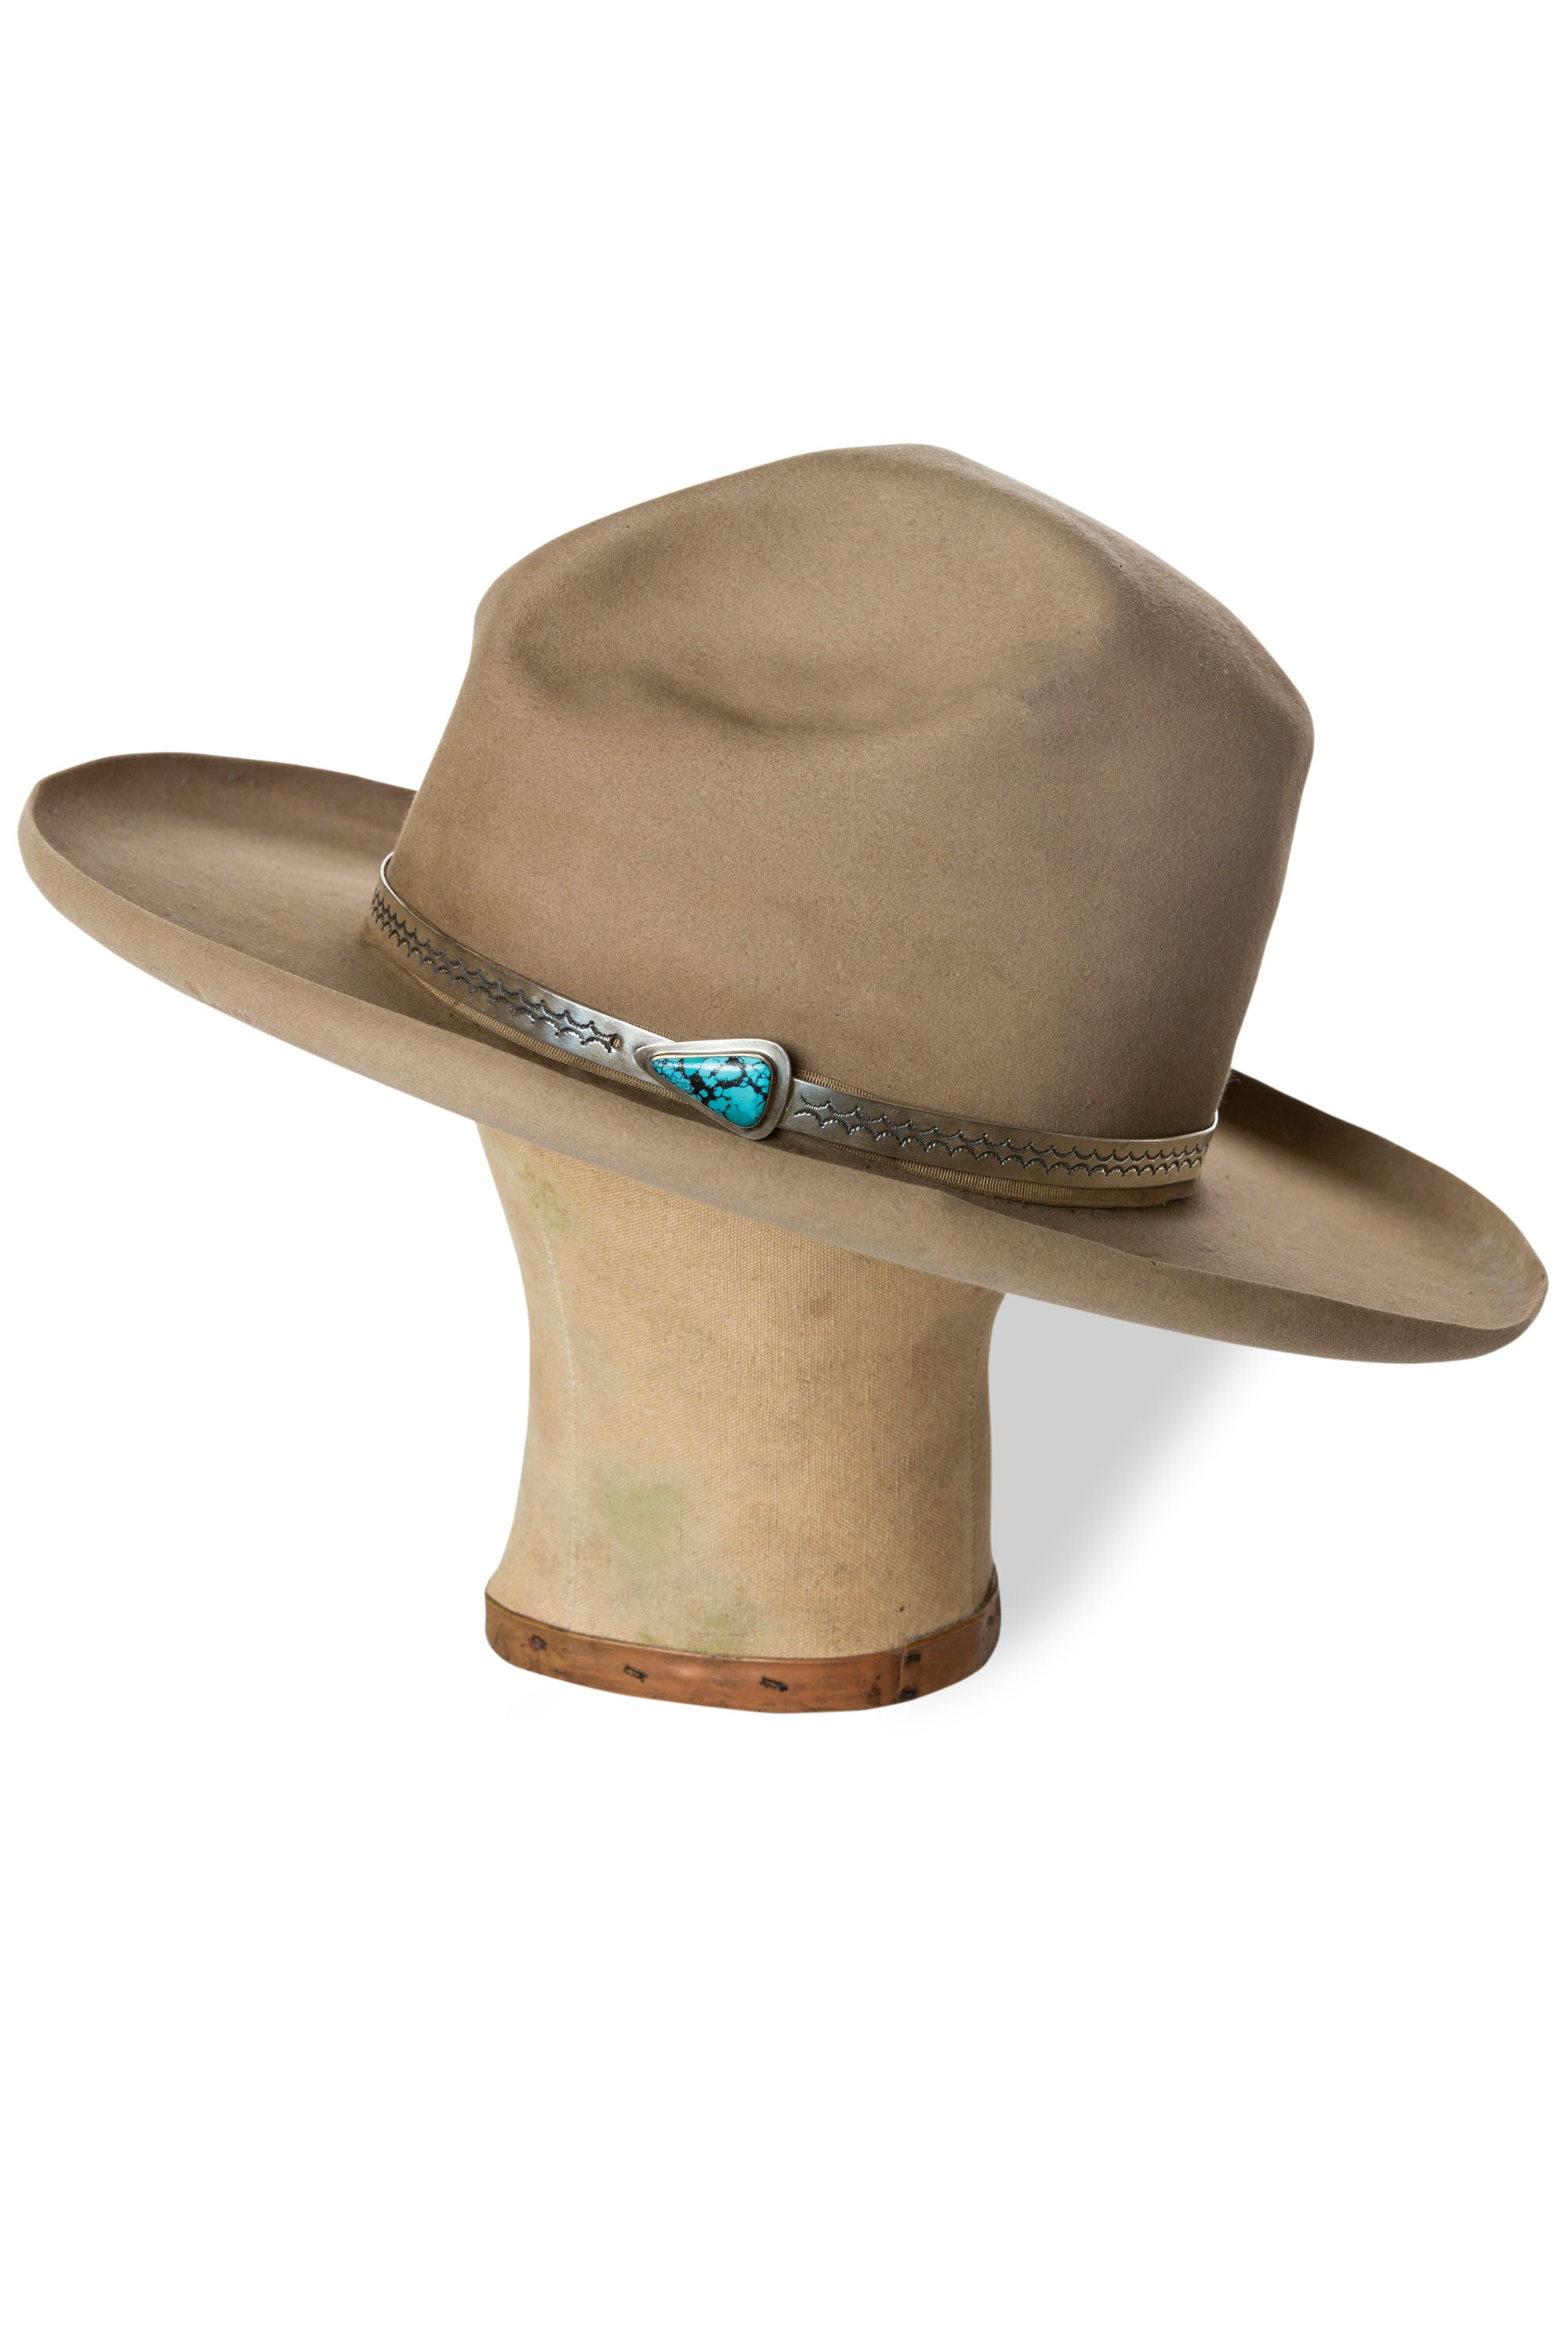 Hat Band, Navajo, Old Pawn, 121